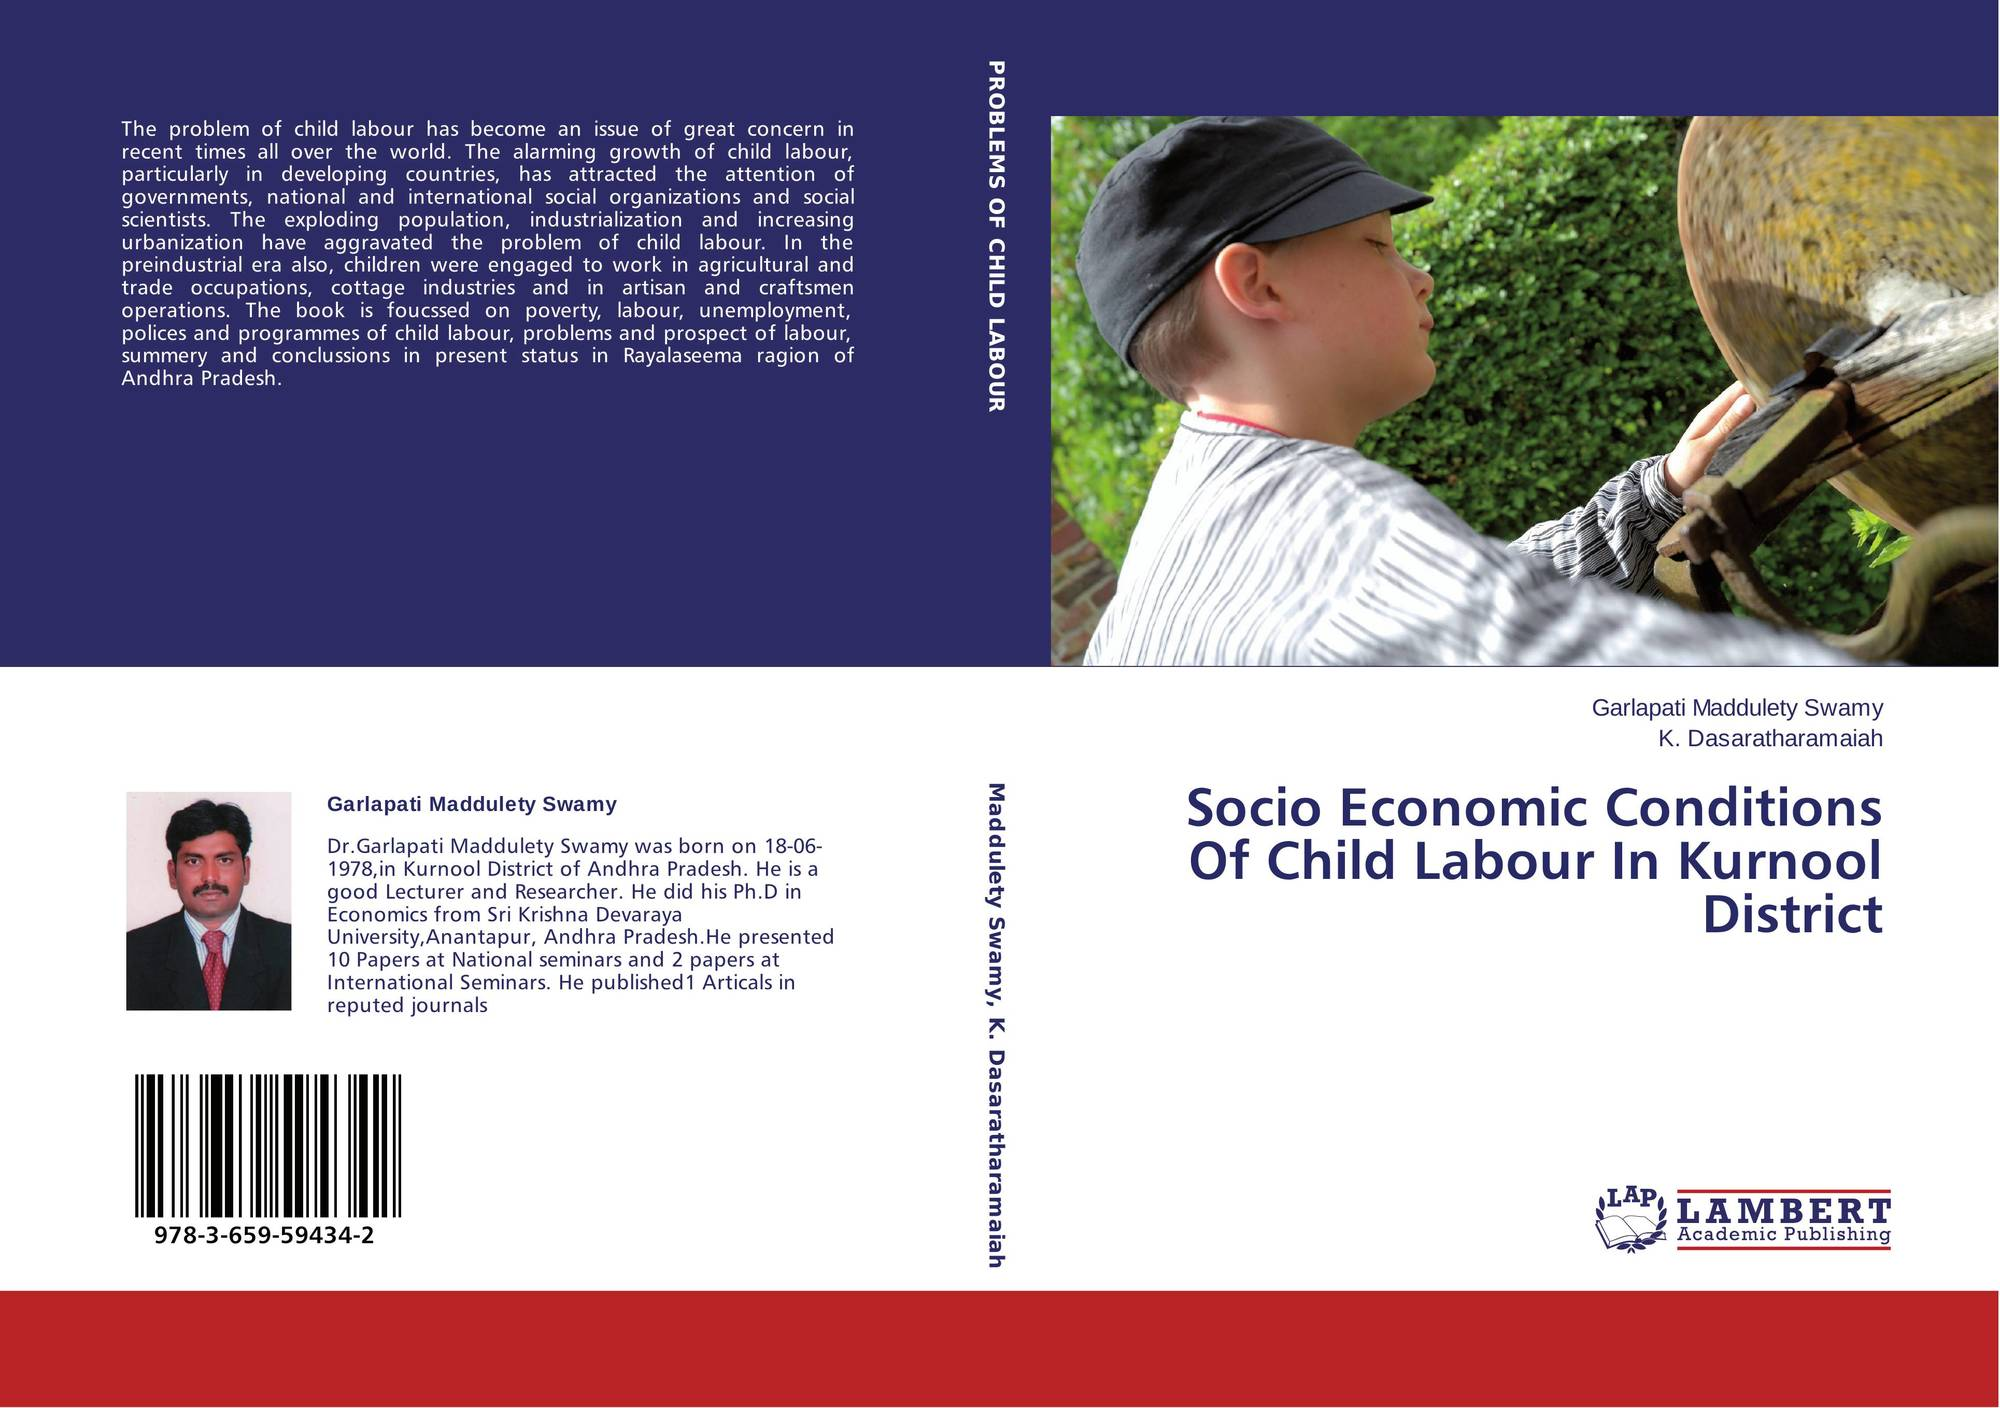 an analysis of child labor conditions in developing countries External decision makers and bodies have also showed concerns and taken stern conditions developing child welfare cost child labor in countries.